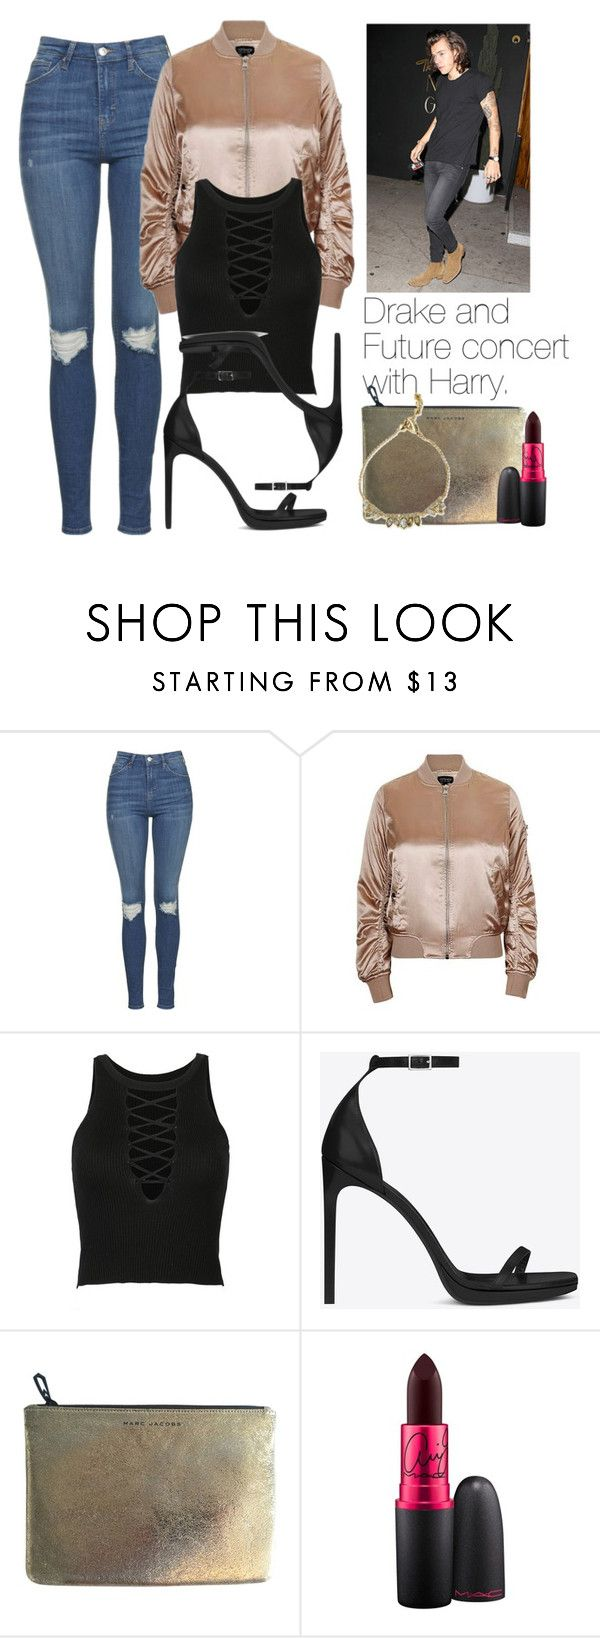 """""""Drake and Future concert with Harry."""" by fireproofnarry ❤ liked on Polyvore featuring Topshop, Yves Saint Laurent, Marc Jacobs, MAC Cosmetics and Alexis Bittar"""